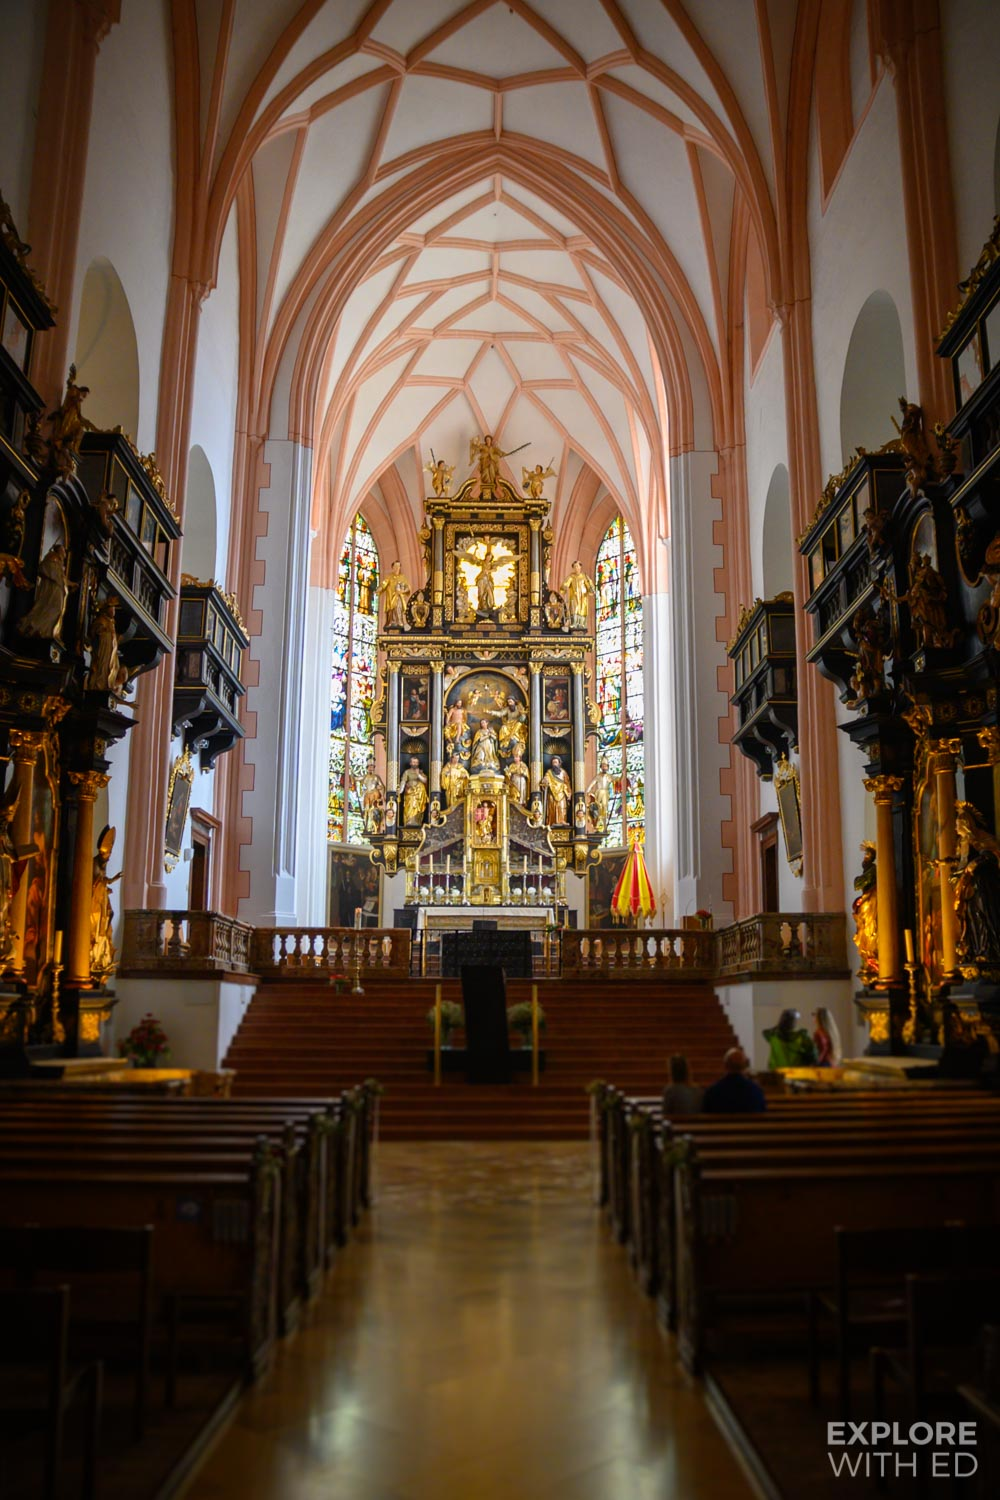 Mondsee Church where Maria and the Captain were married in the film